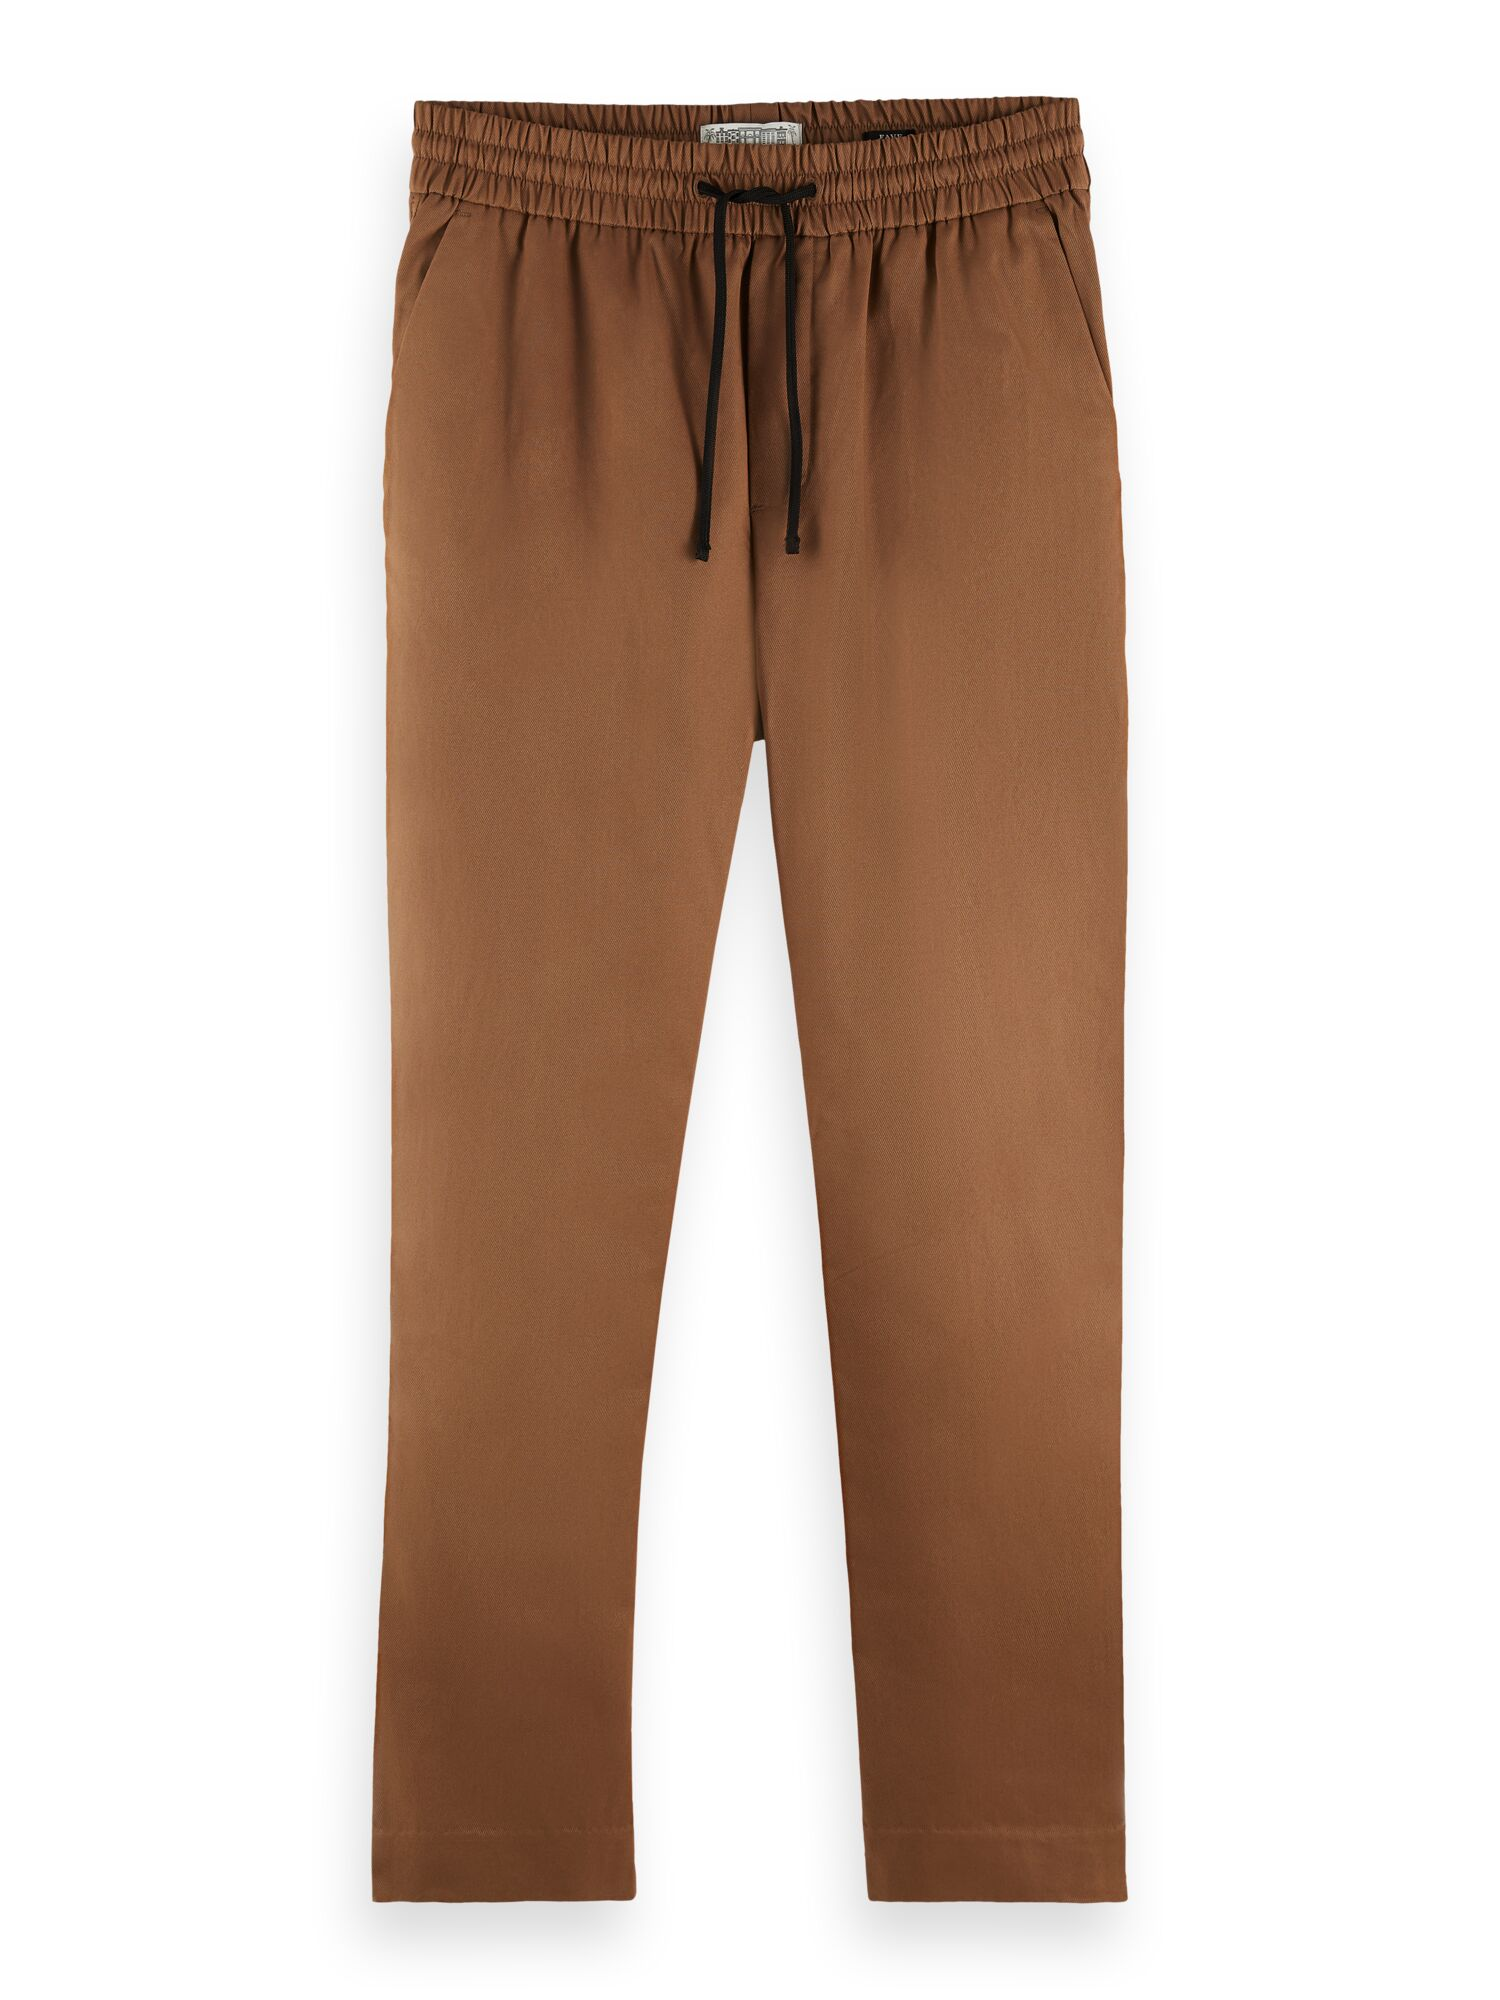 Scotch & Soda | FAVE- Lightweight chino in jogger styling in organic cotton